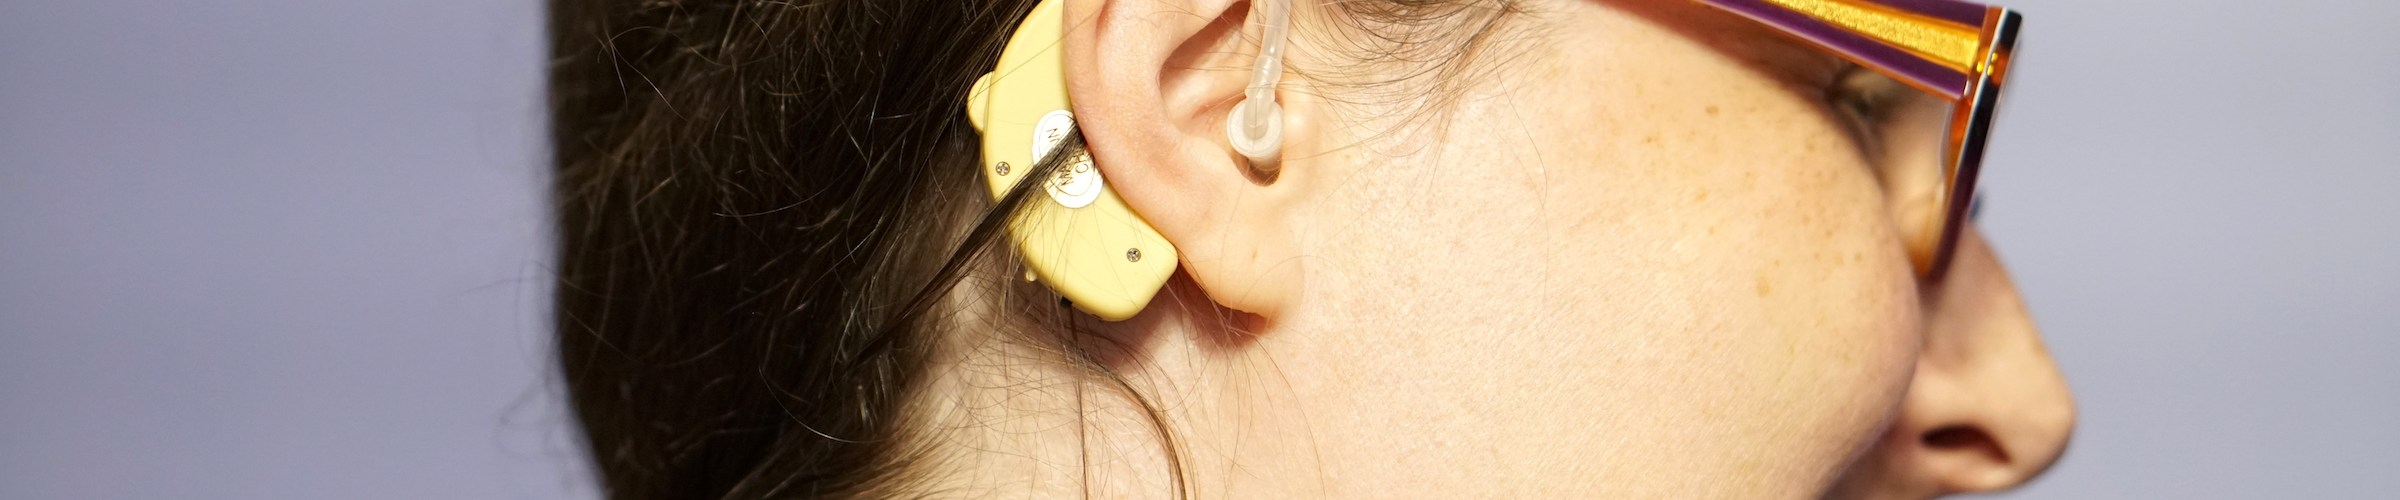 With the hair fully back you can see the entire hearing aid.